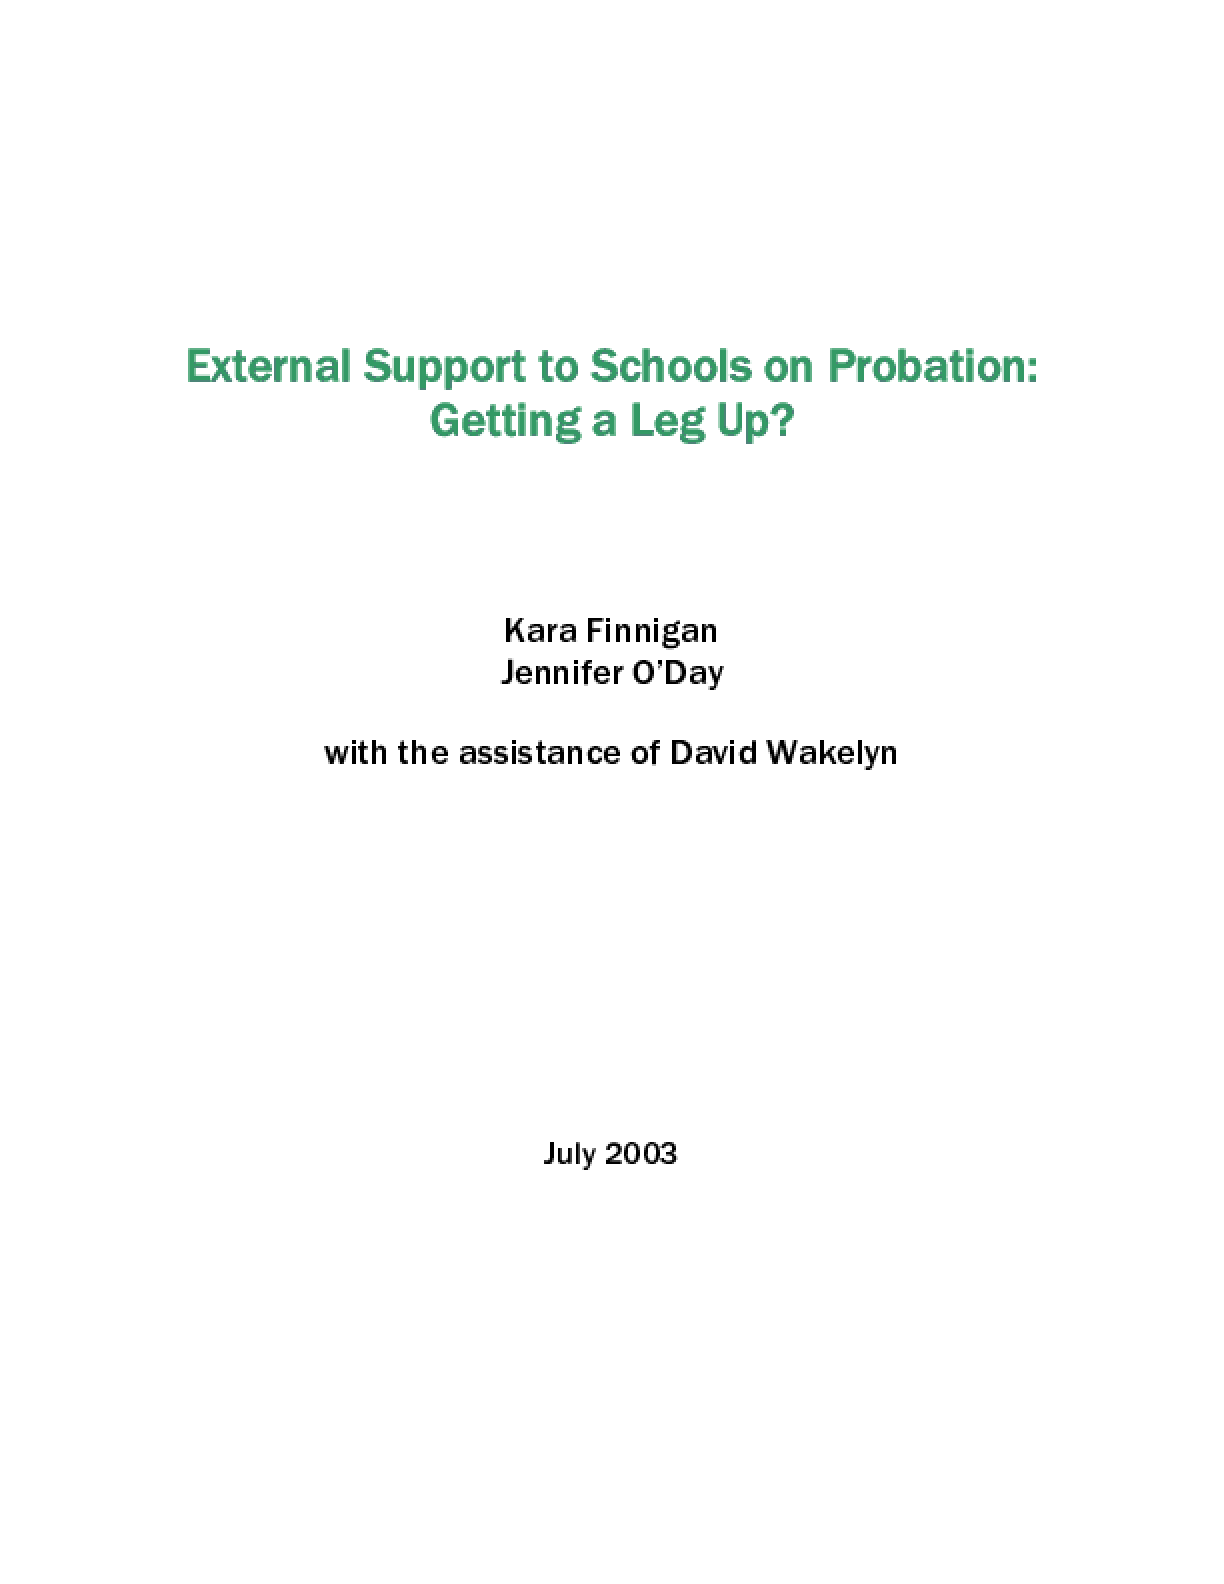 External Support to Schools on Probation: Getting a Leg Up?